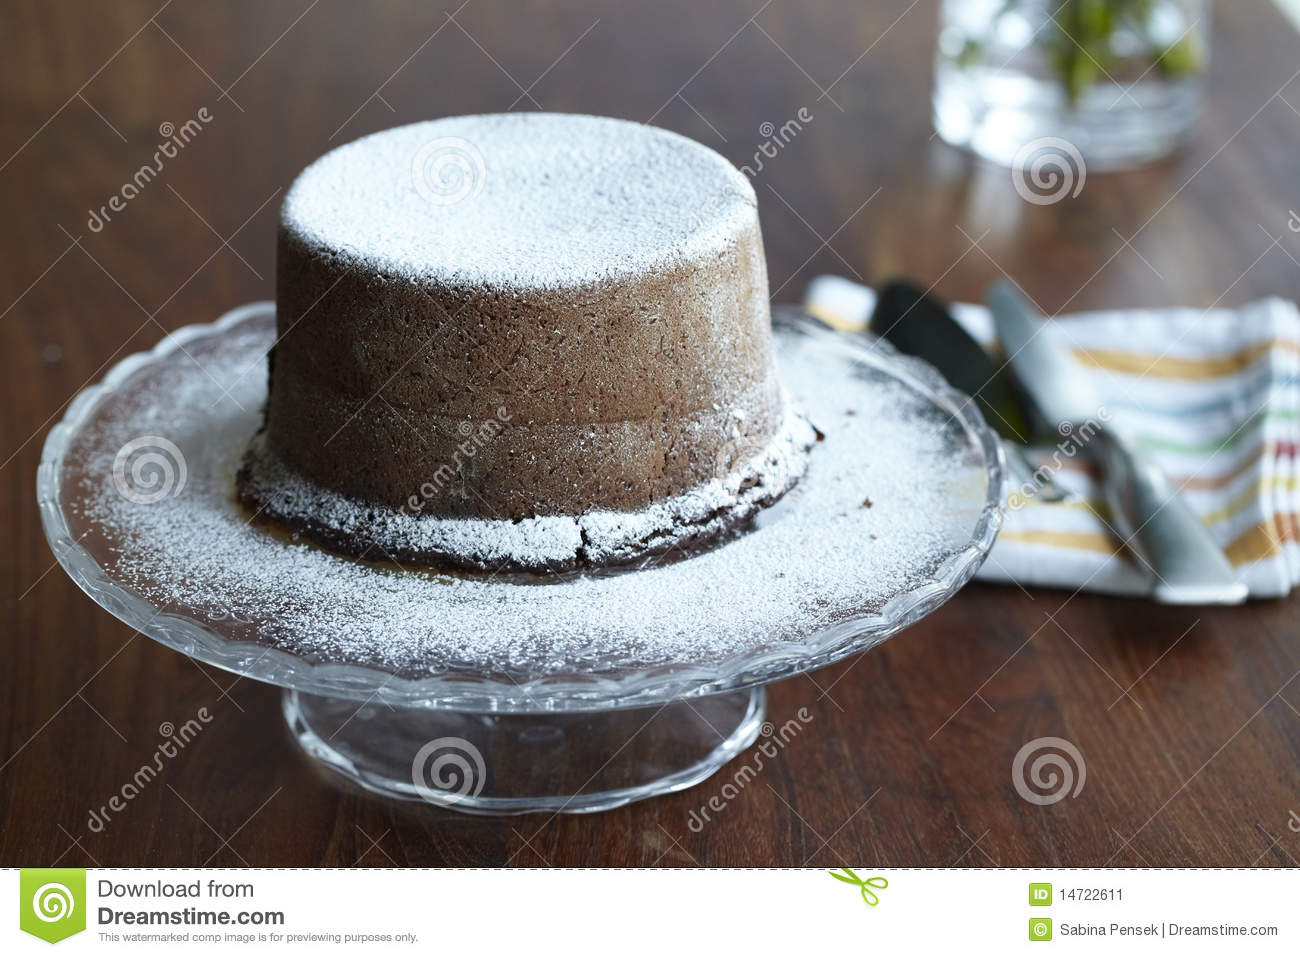 Steamed Pudding Chocolate Cake Stock Image - Image: 14722611